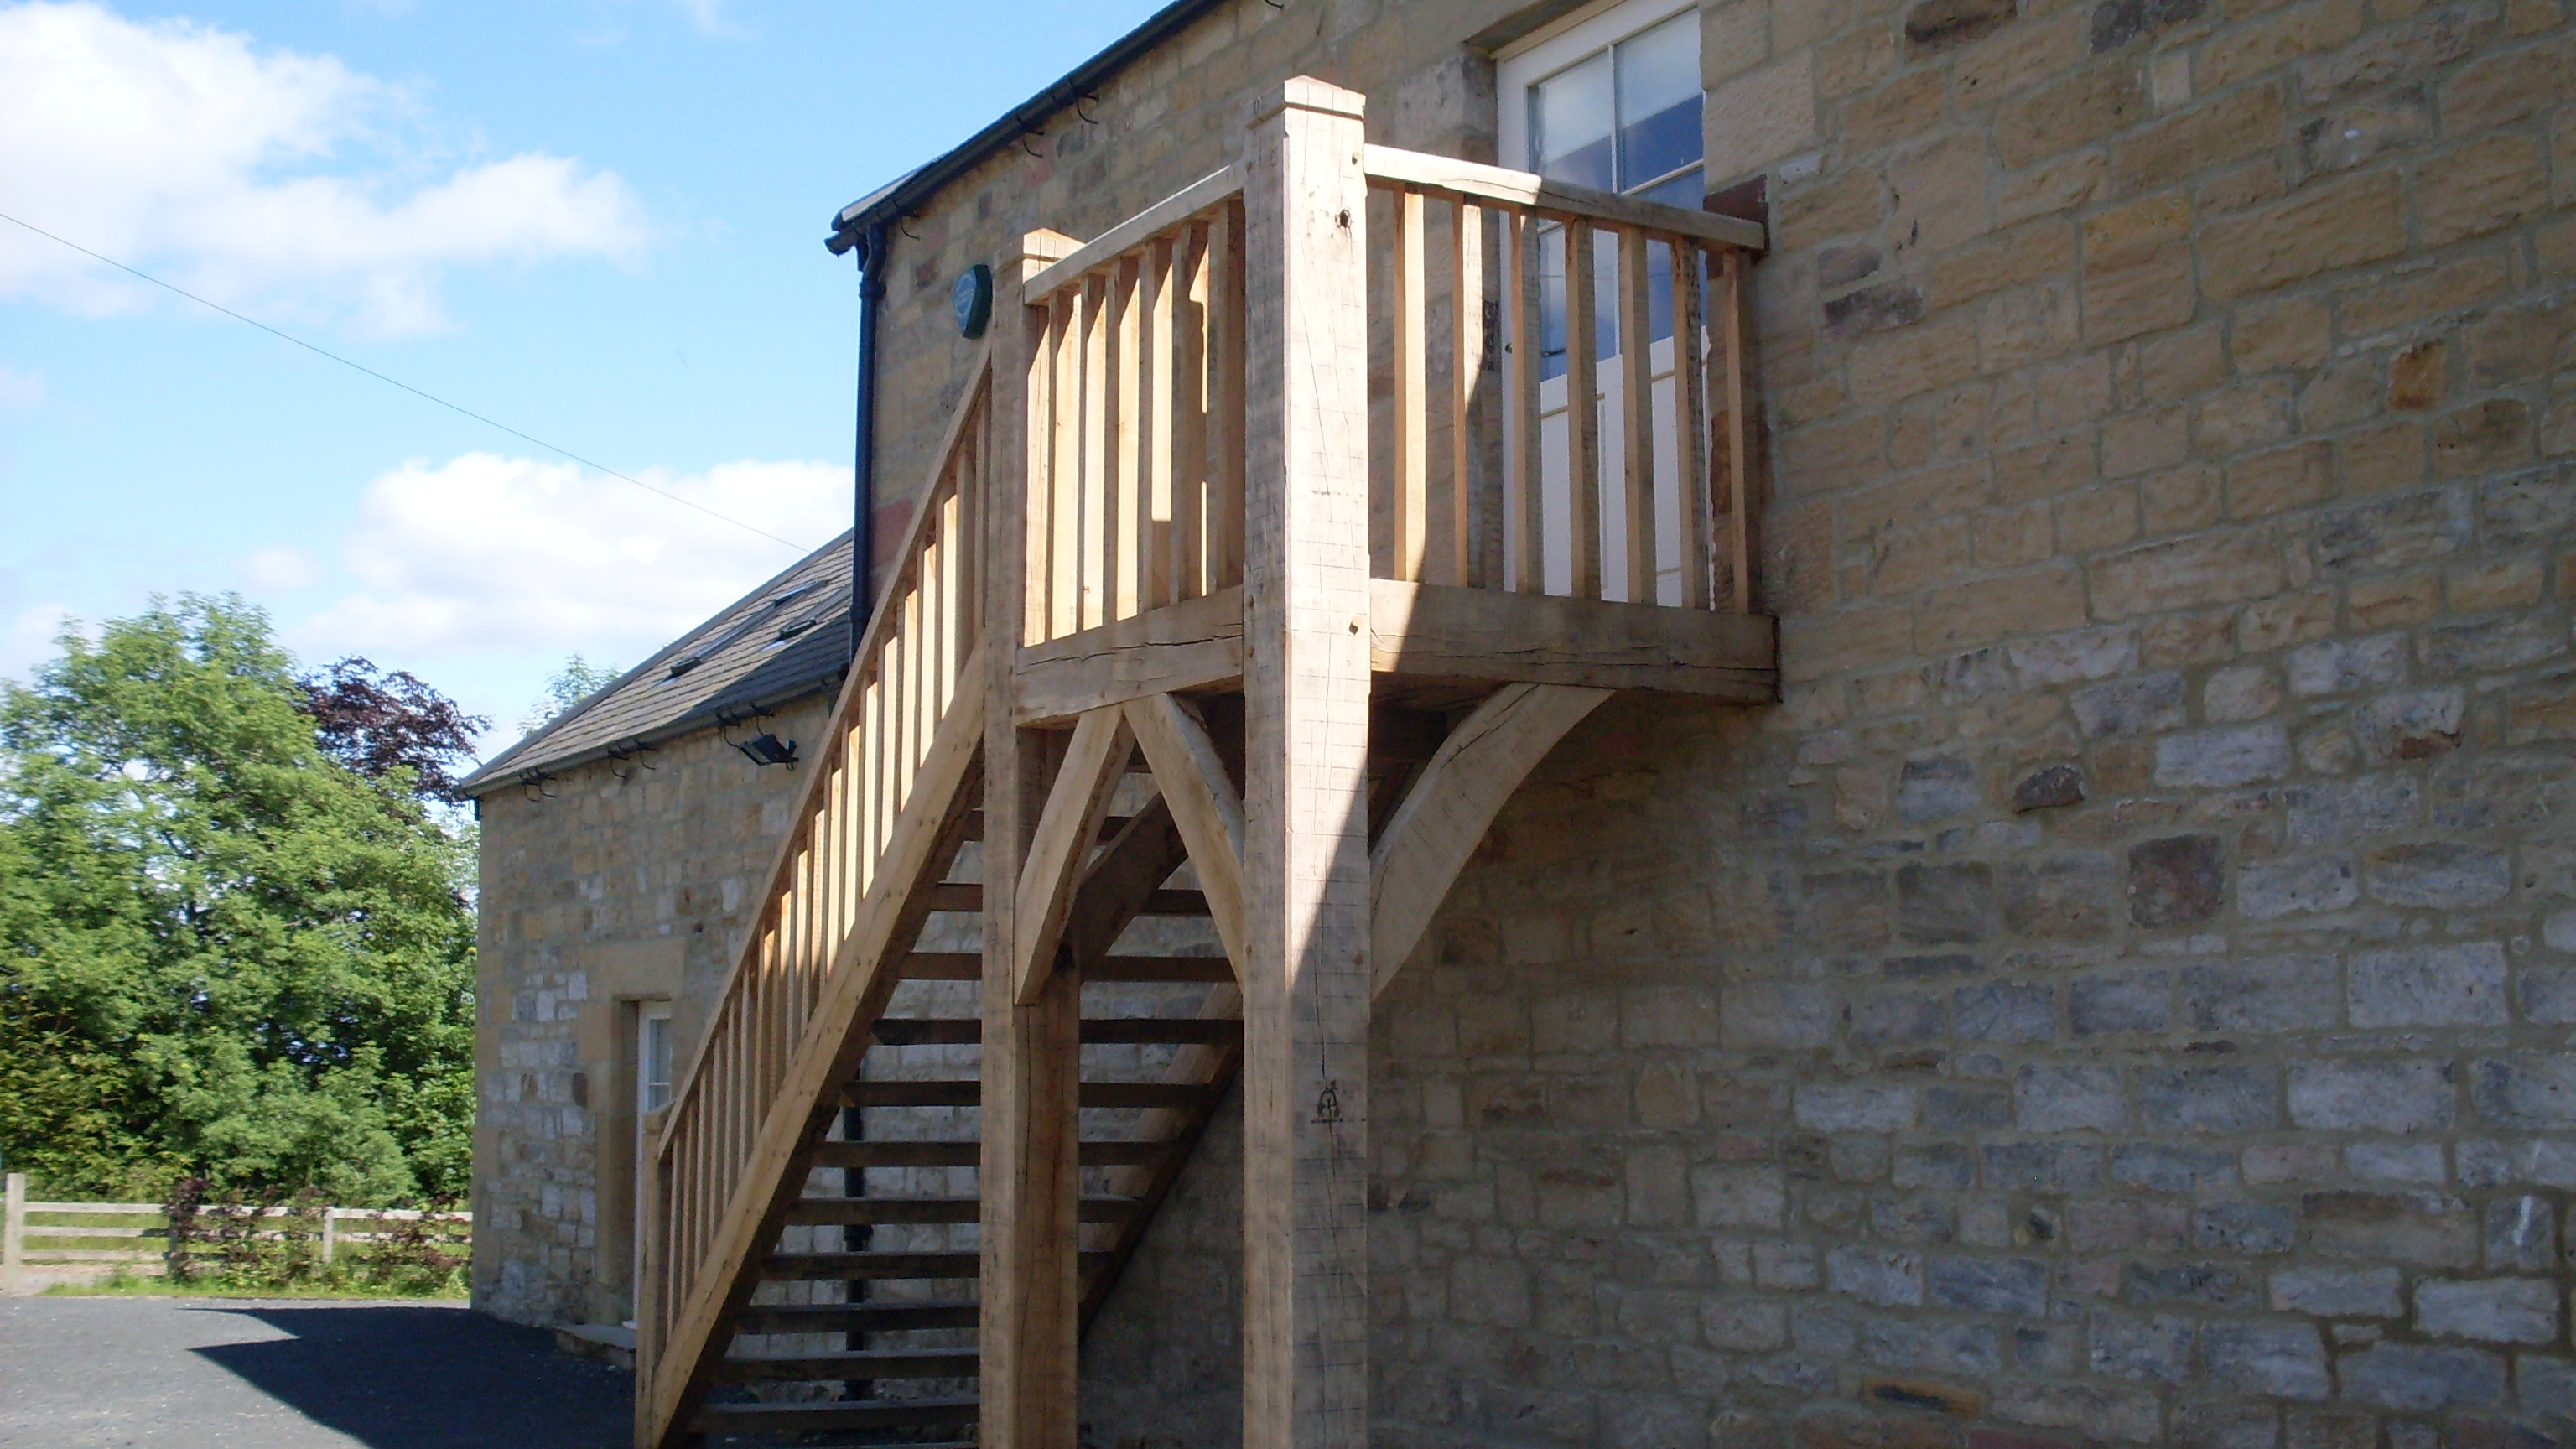 Rustic external staircase and porches tradoak case study for External staircase designs for homes